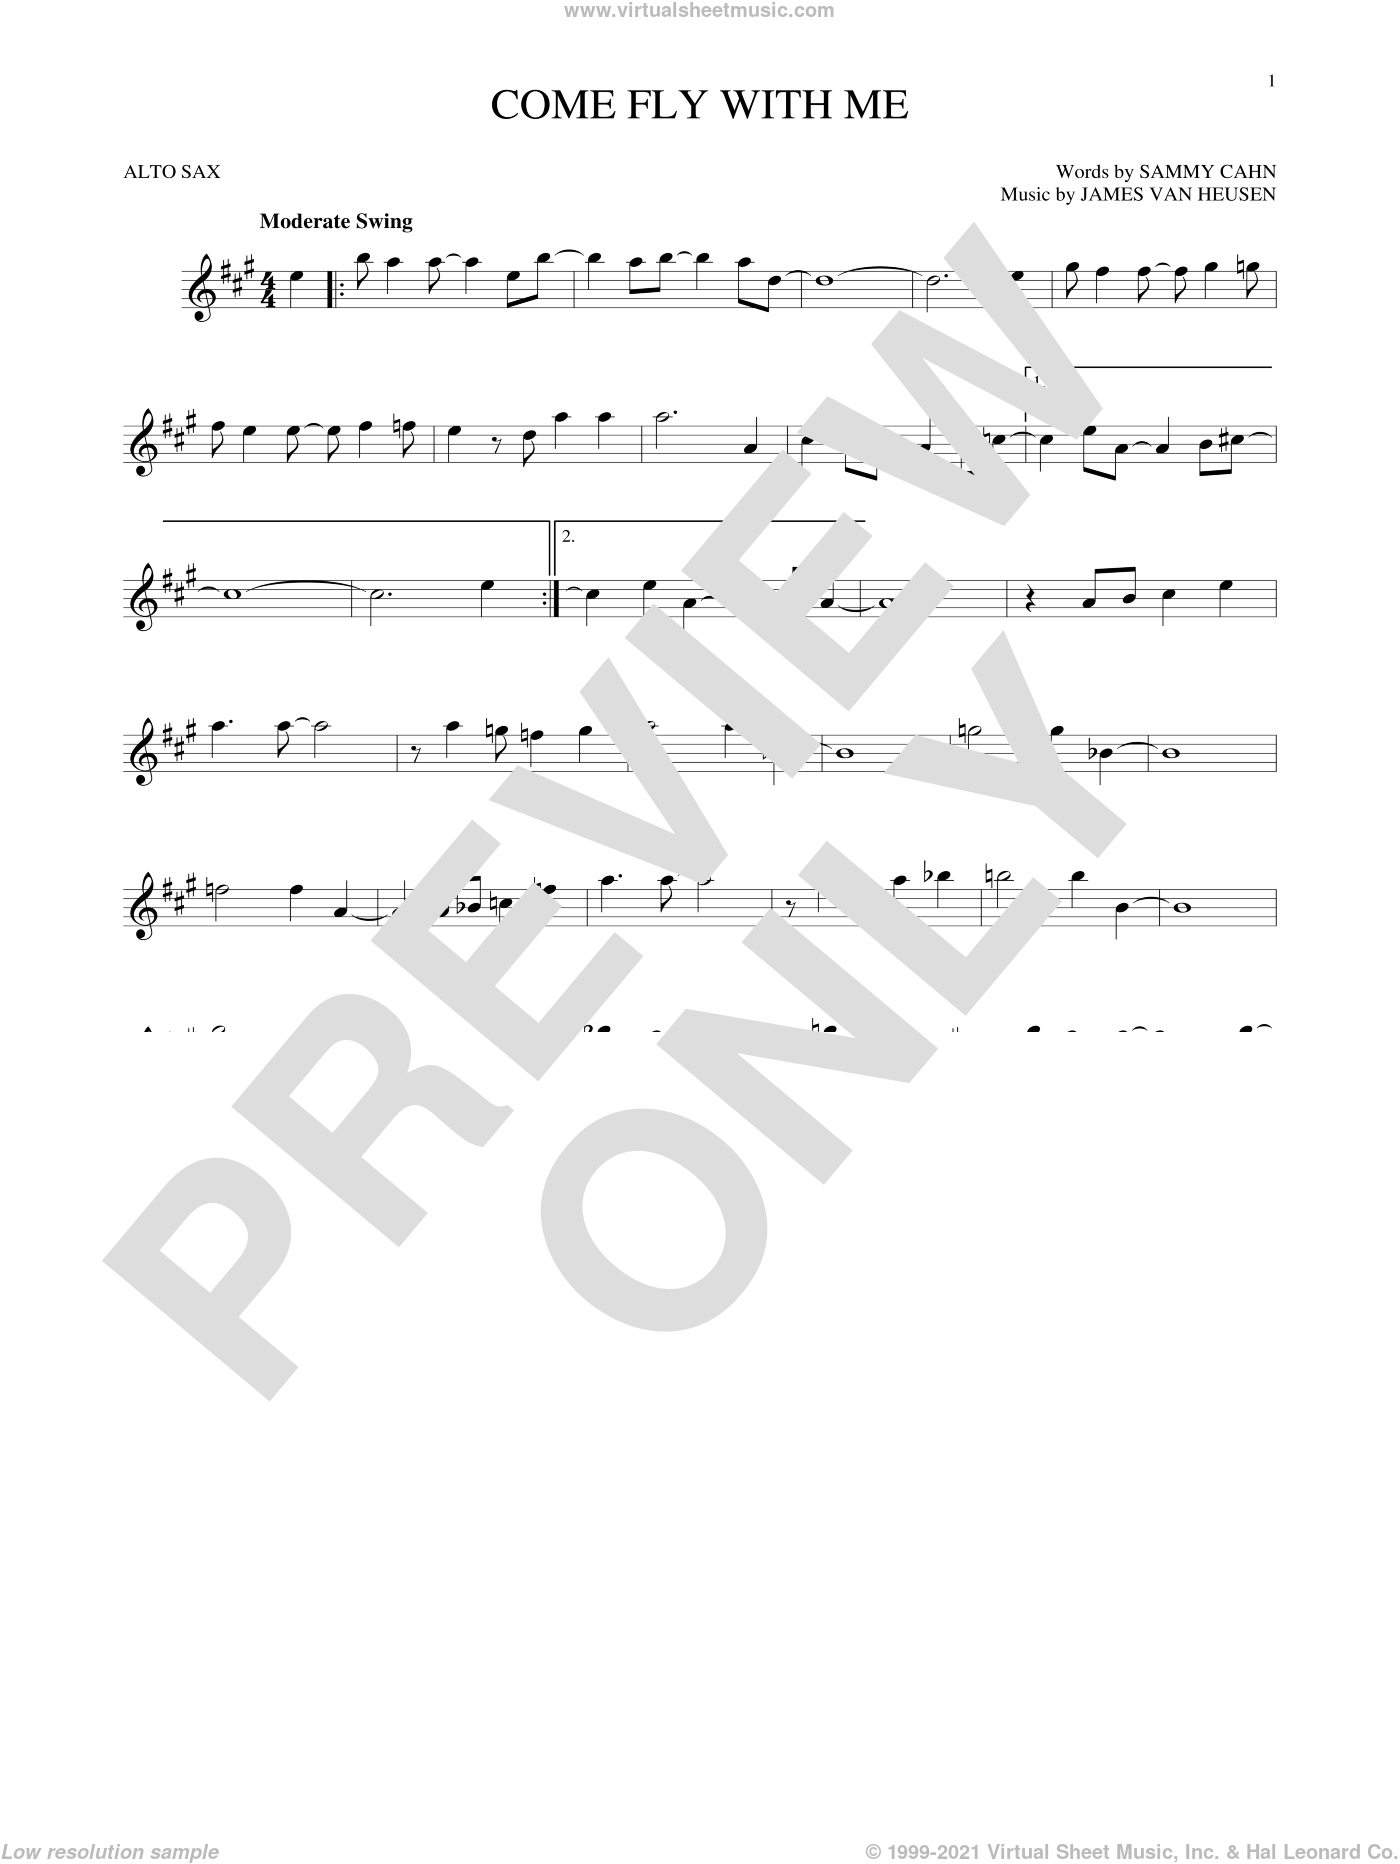 Come Fly With Me sheet music for alto saxophone solo by Sammy Cahn, Jimmy van Heusen and Sammy Cahn & James Van Heusen, intermediate skill level